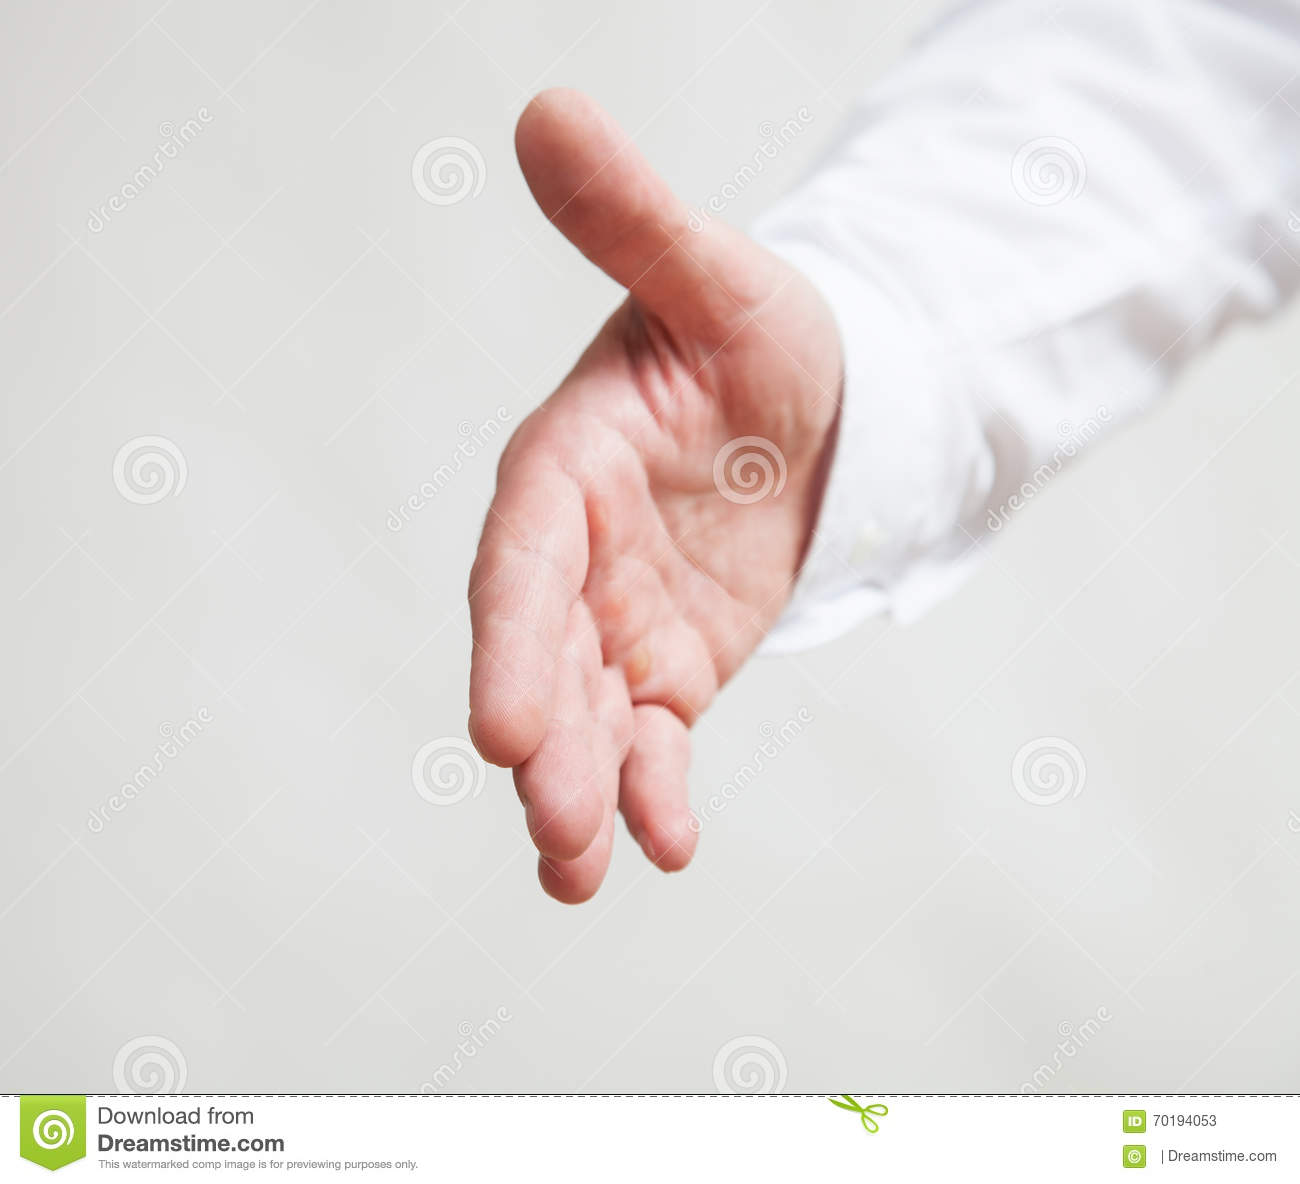 Male hand showing a gesture of a support